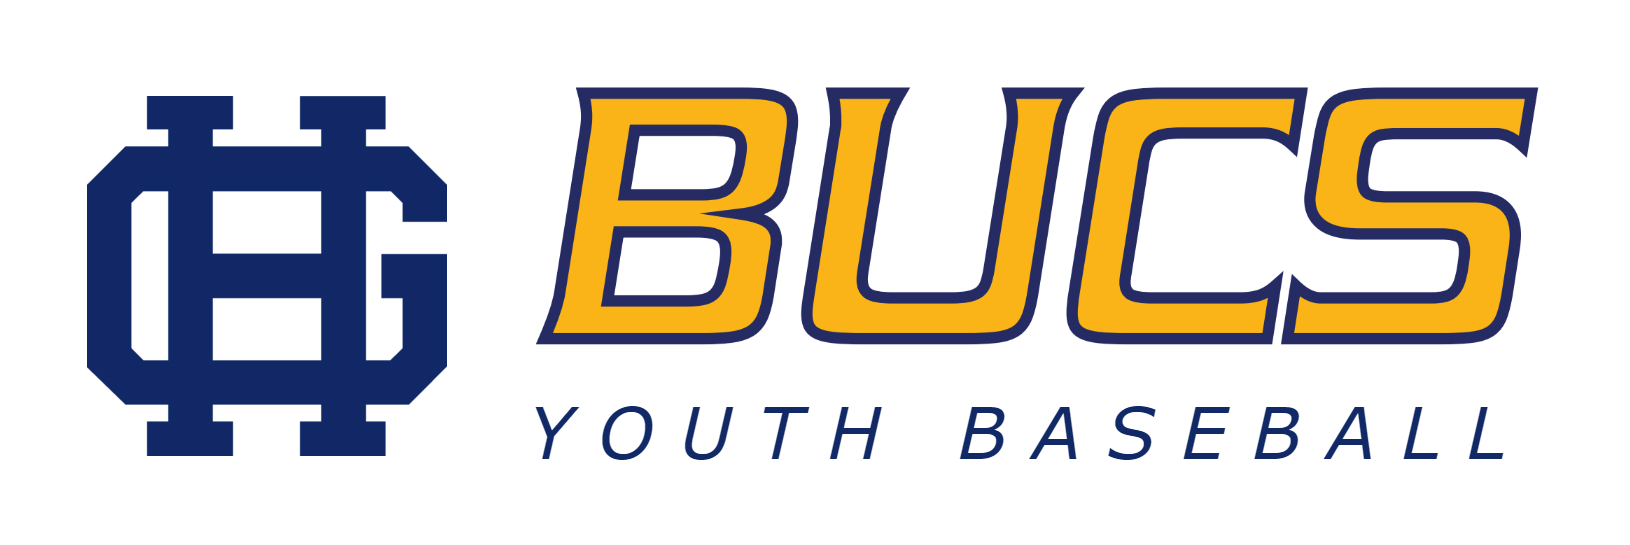 2020 bucs youth baseball logo header